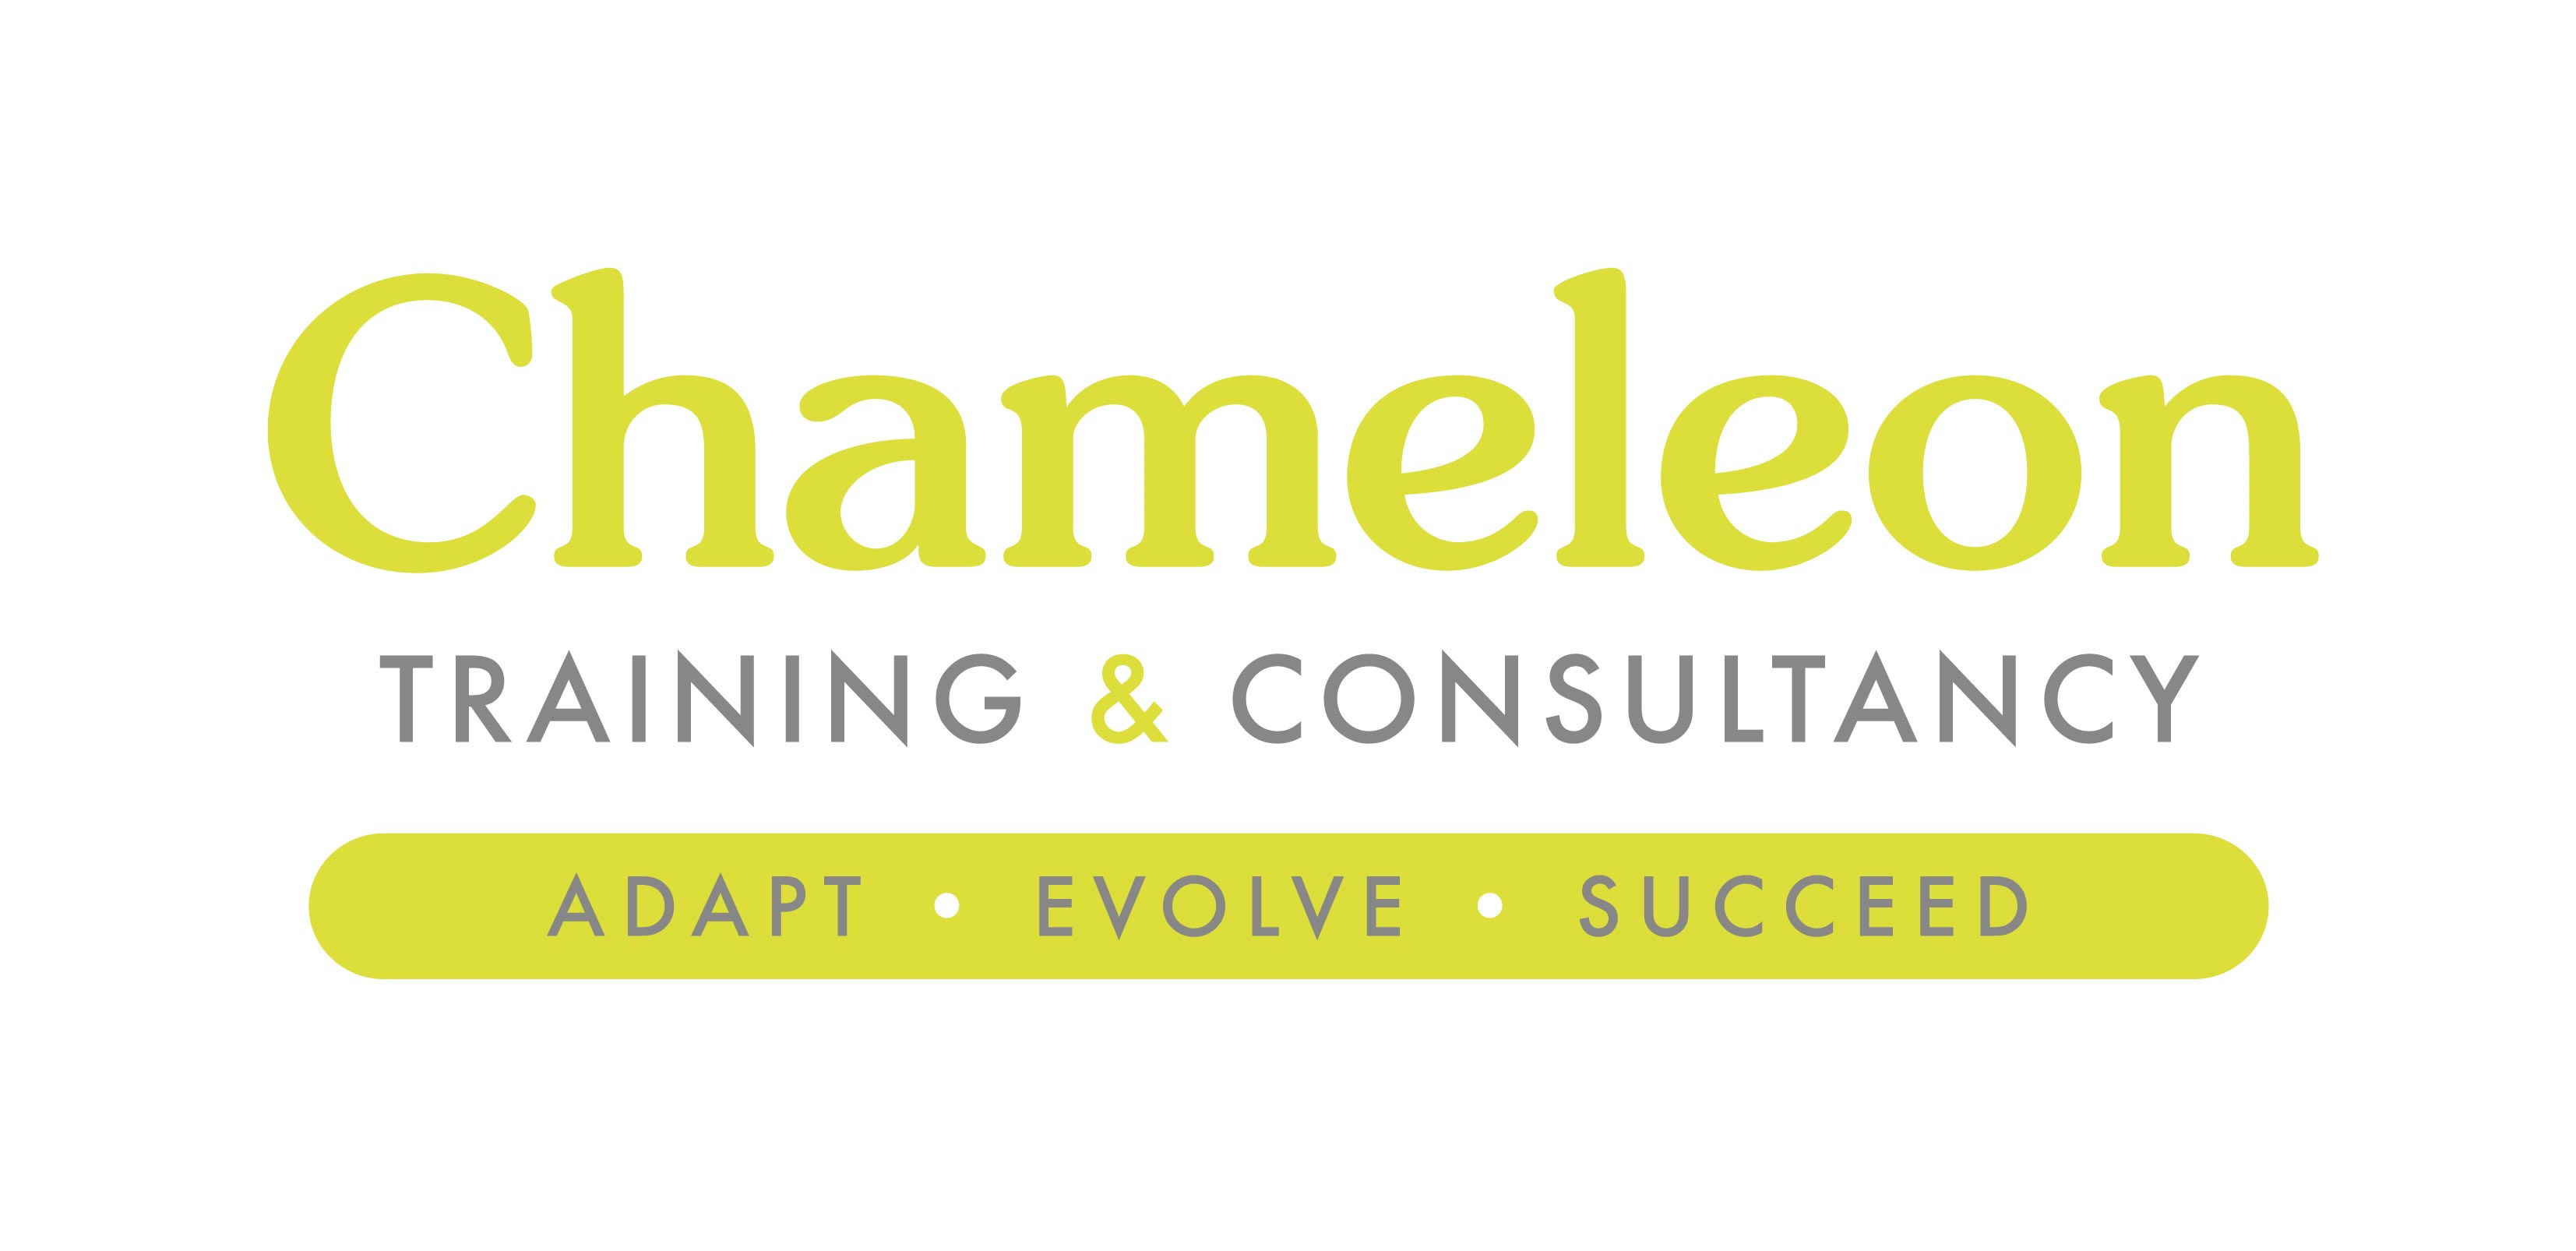 Chameleon Training and Consultancy